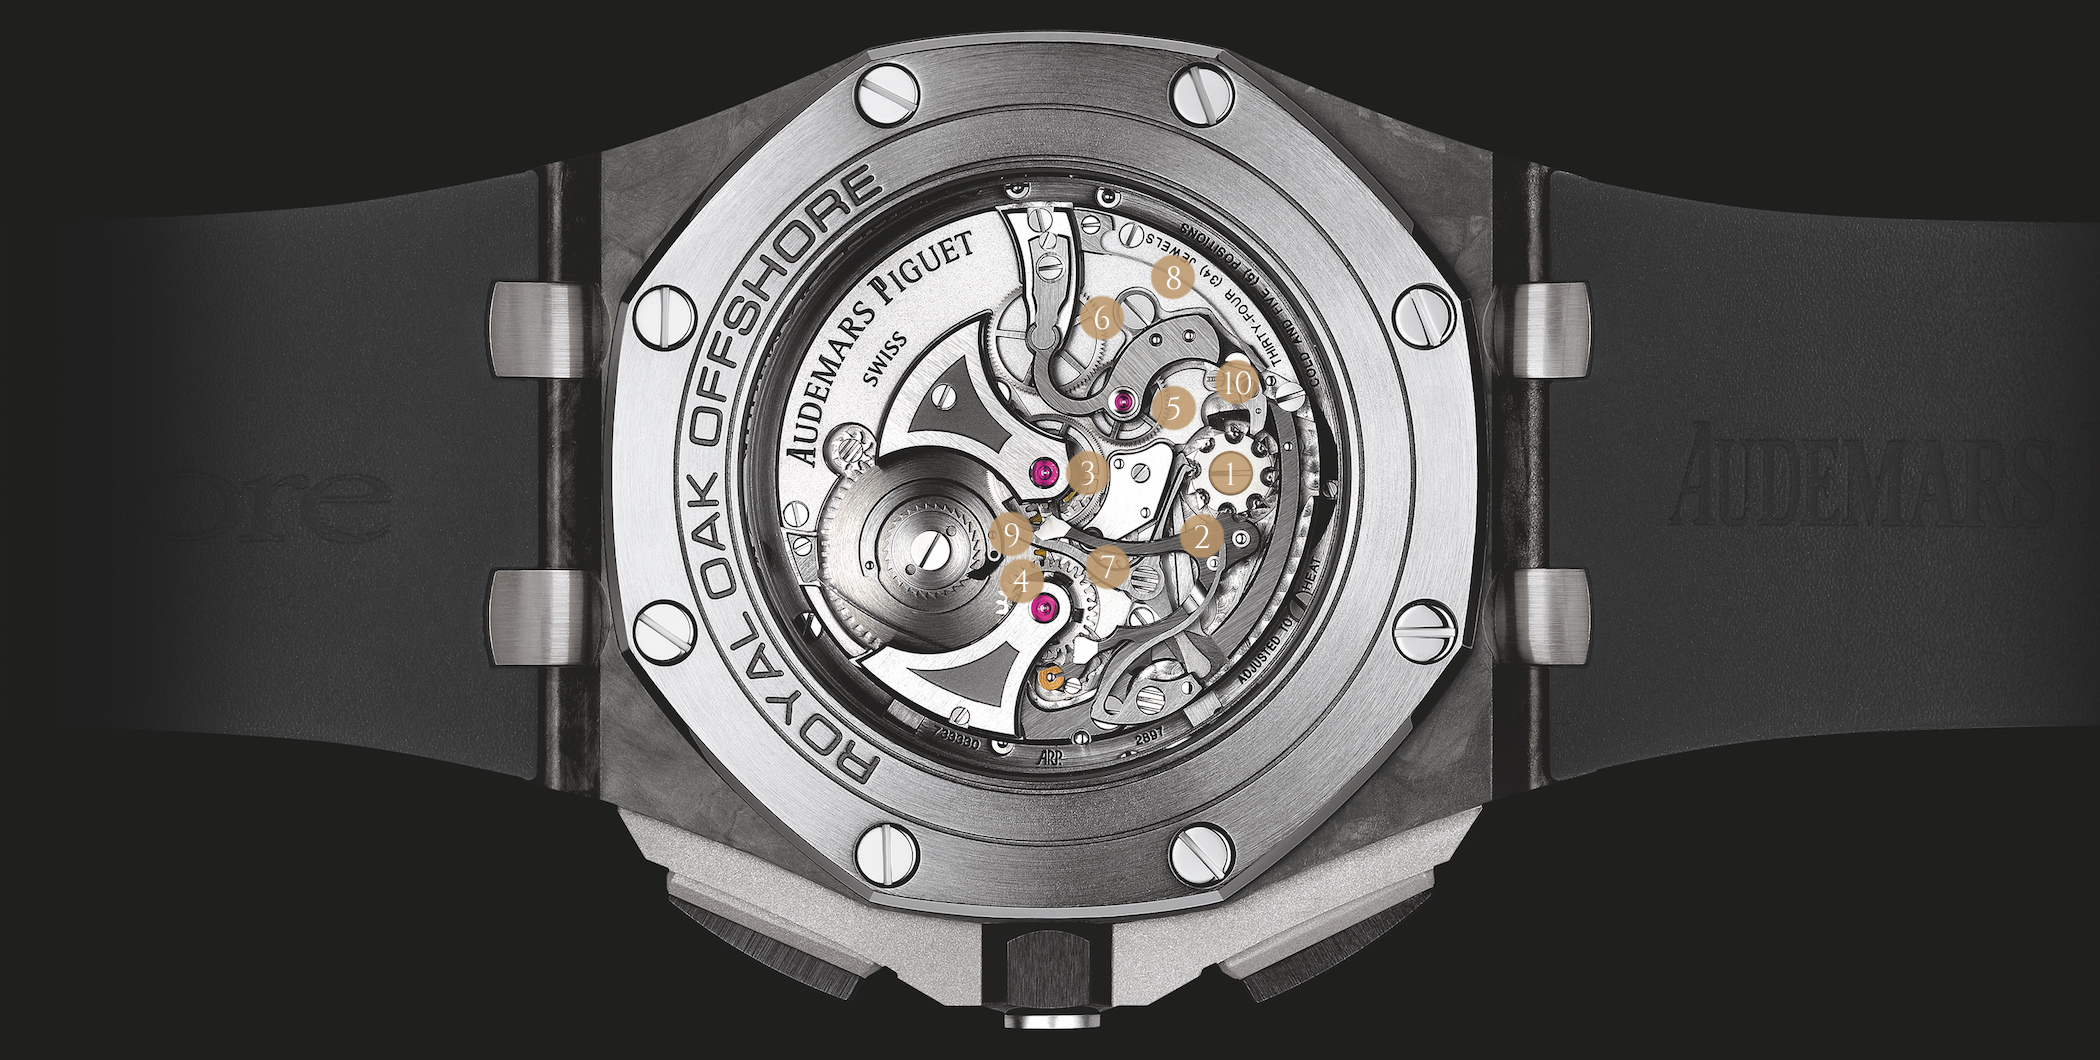 Audemars Piguet Royal Oak Offshore Ref. 26550AU, Calibre 2897